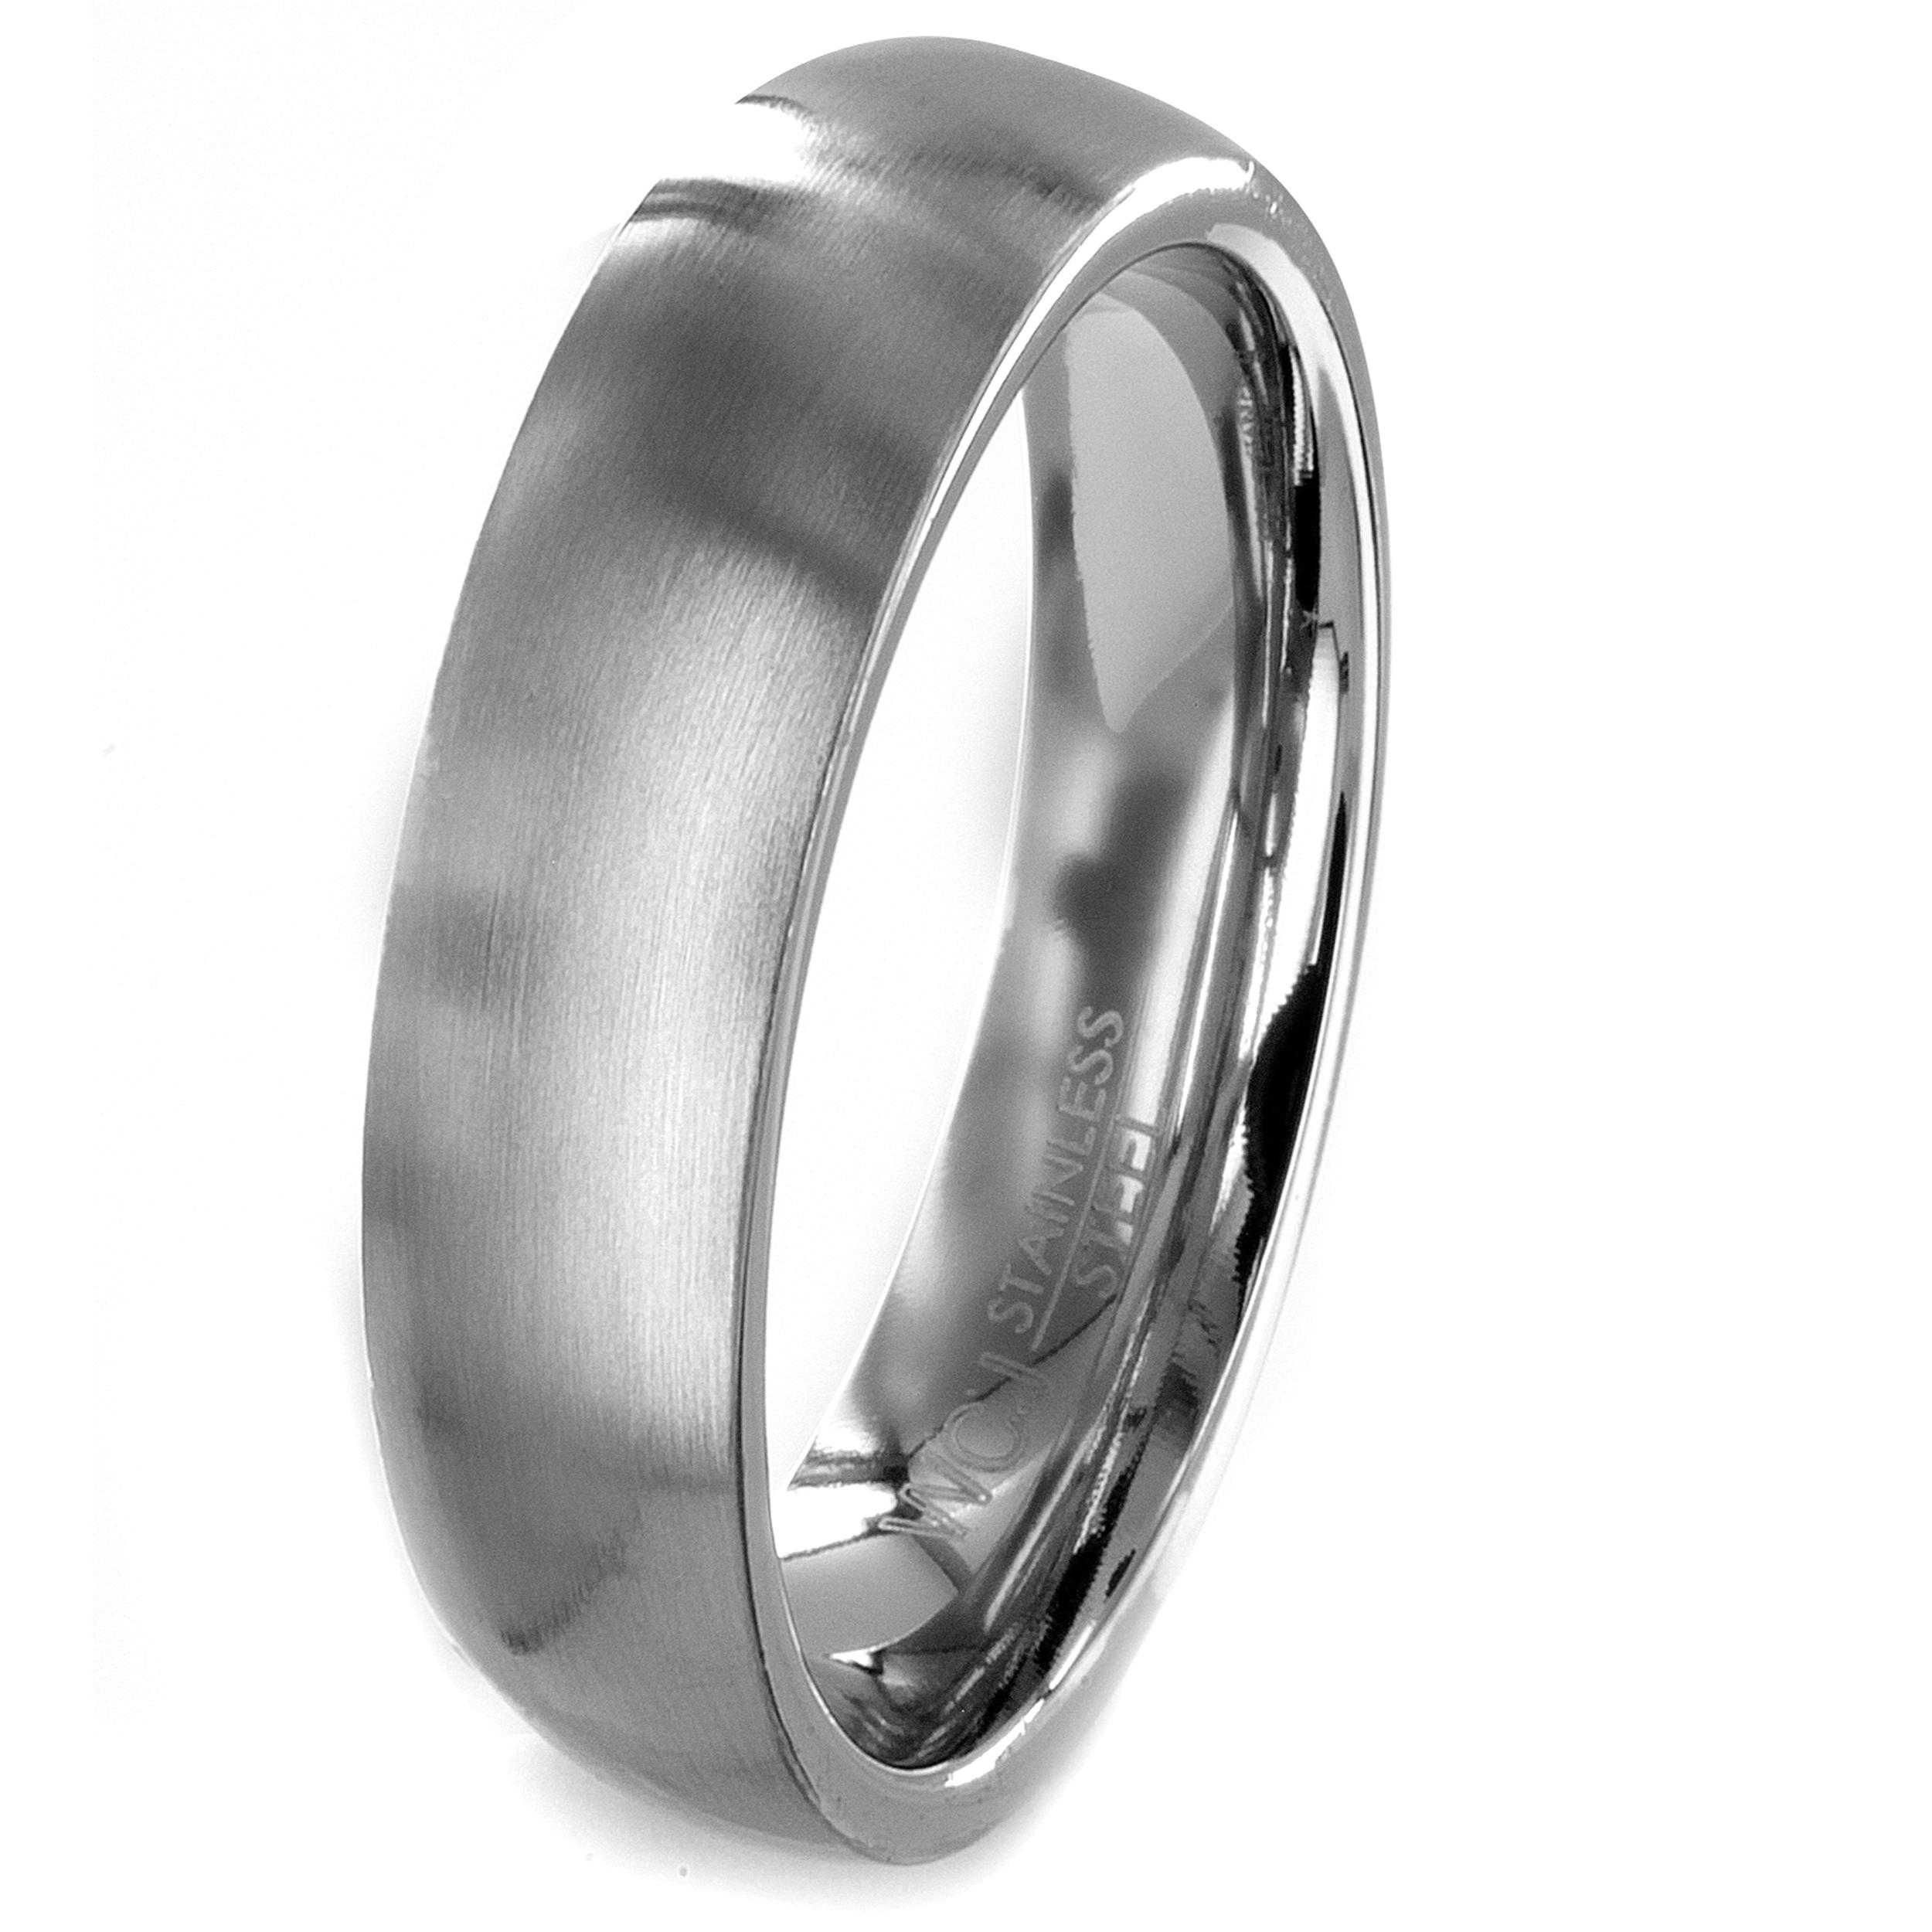 Stainless Steel Brushed Finish Wedding Band